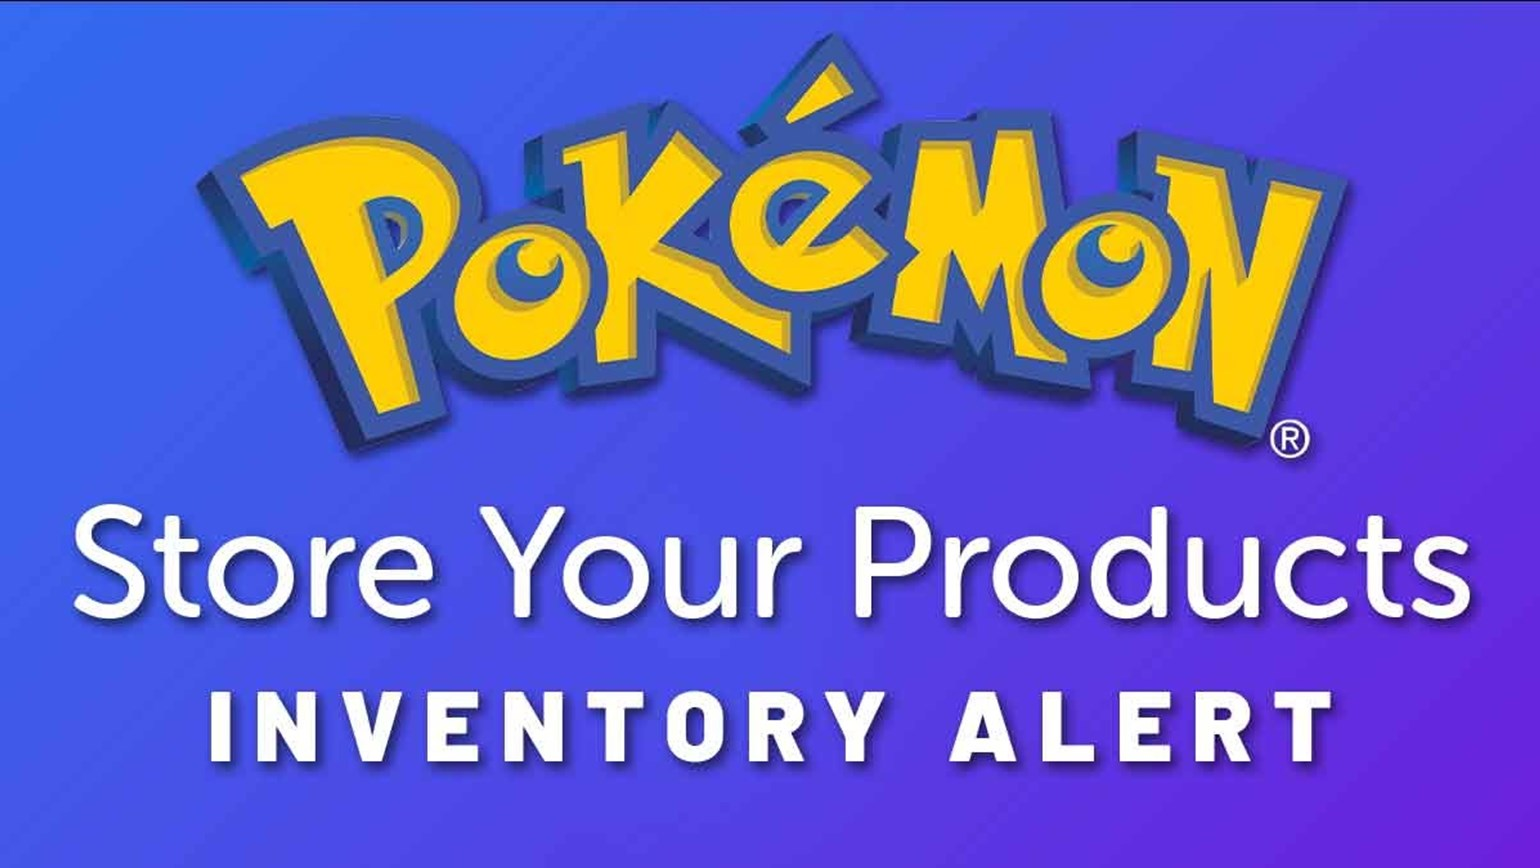 We've Added More Pokémon To Store Your Products